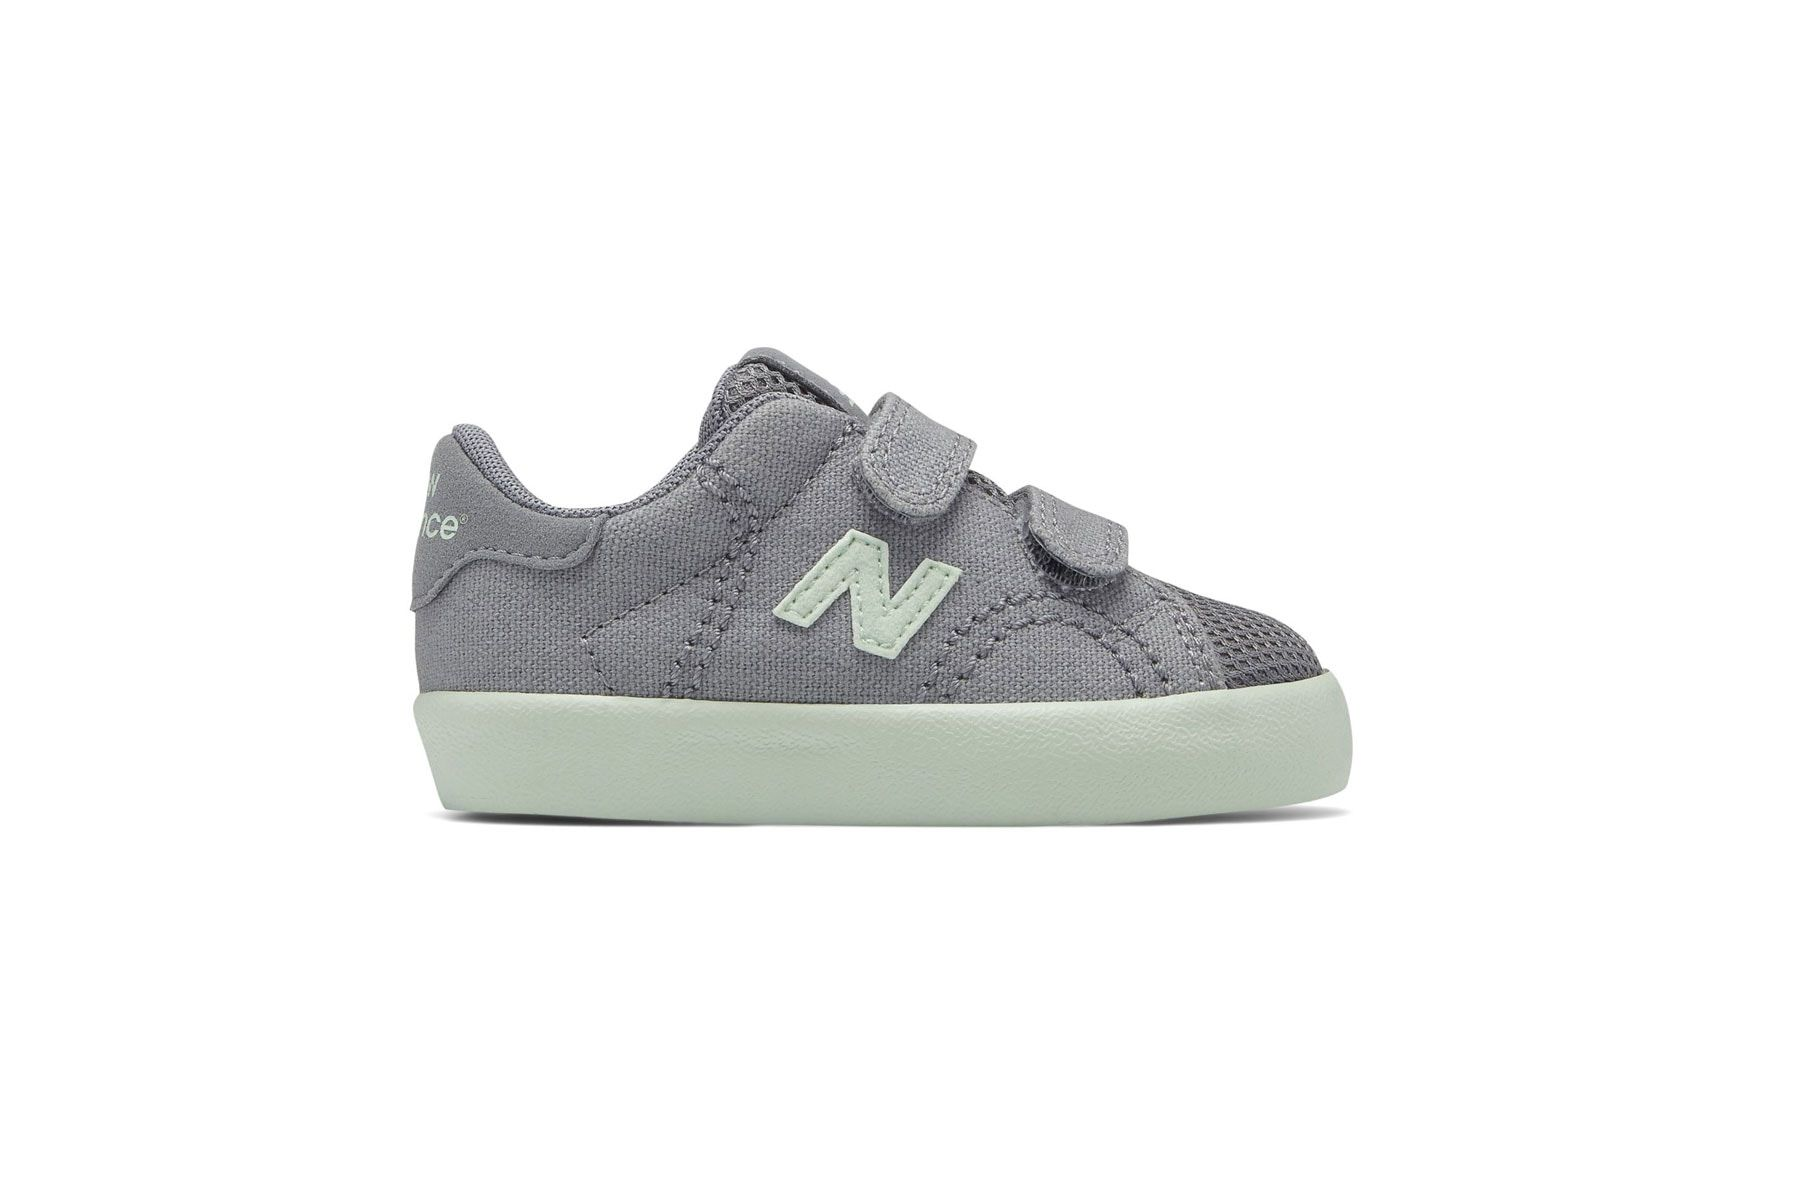 f61e4d5e new balance mesh pro court kids tennis shoes where to buy | 2019 ...